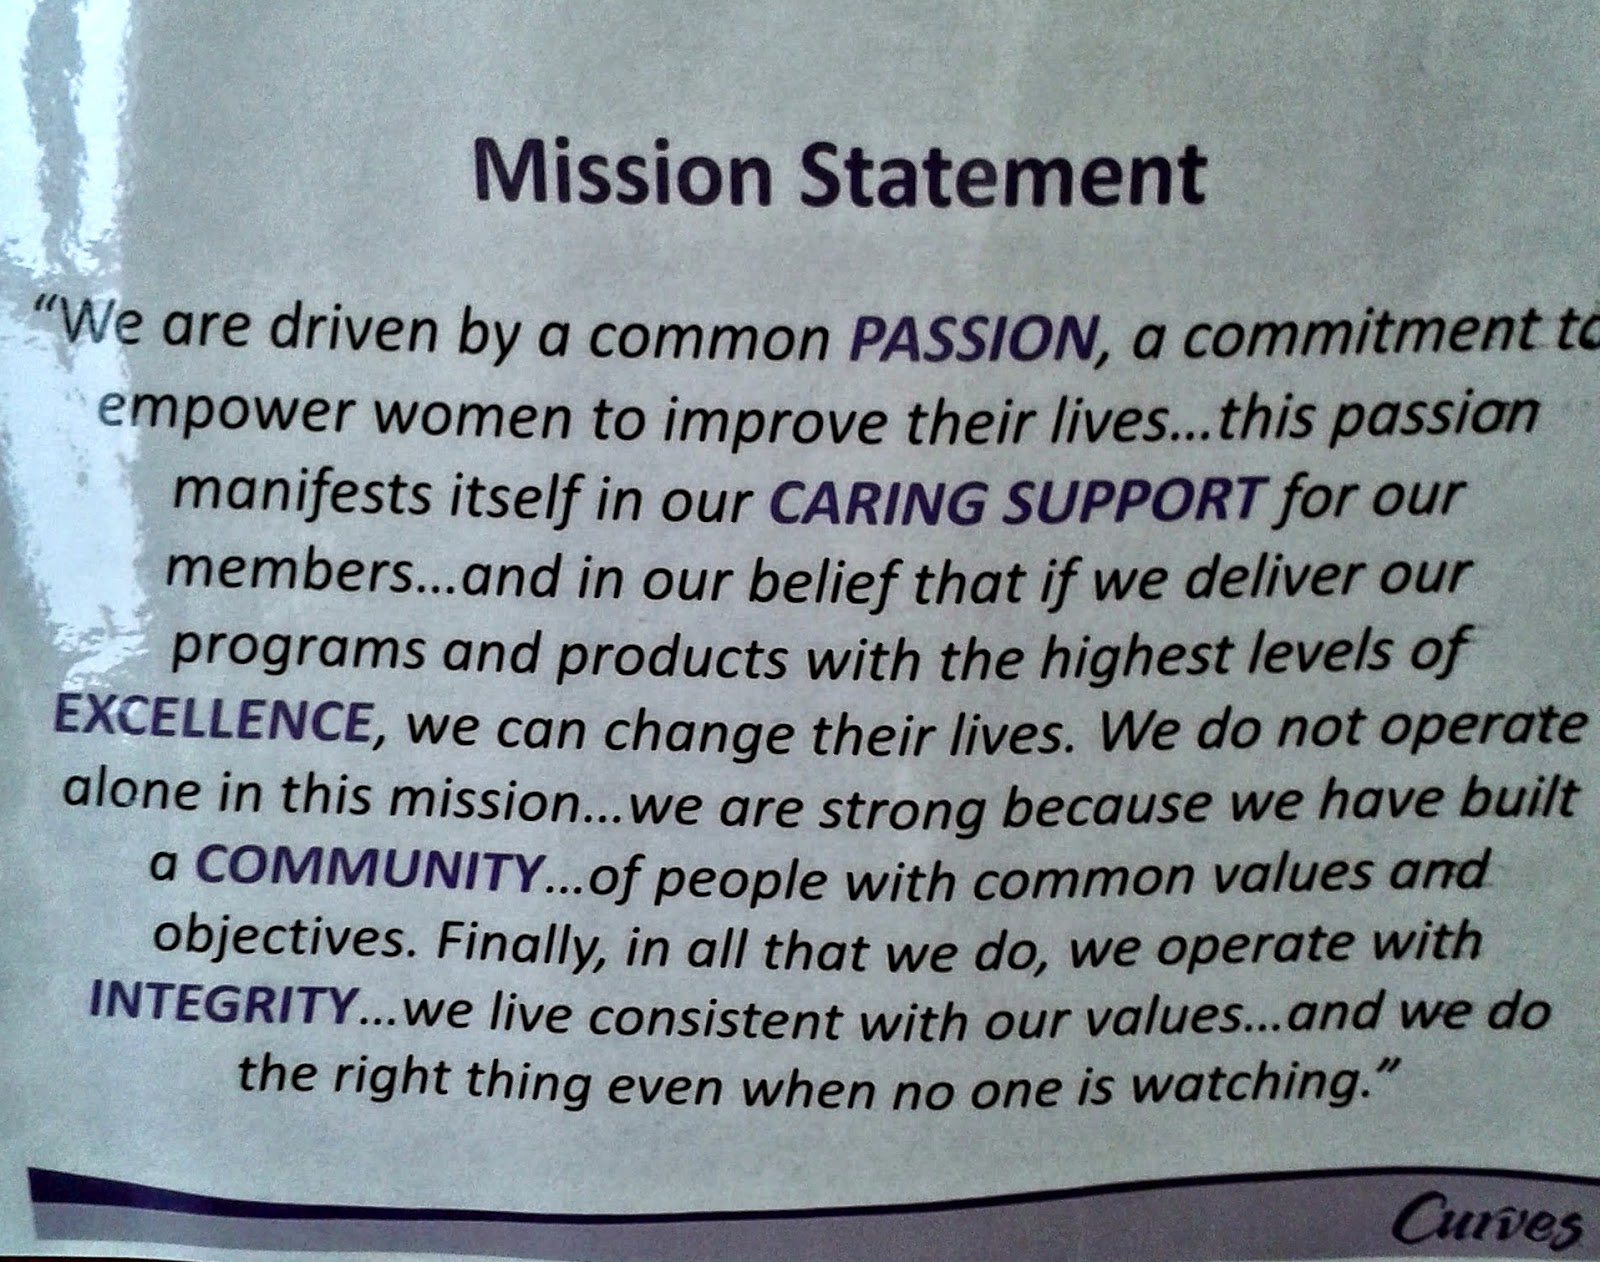 The Curves mission statement.